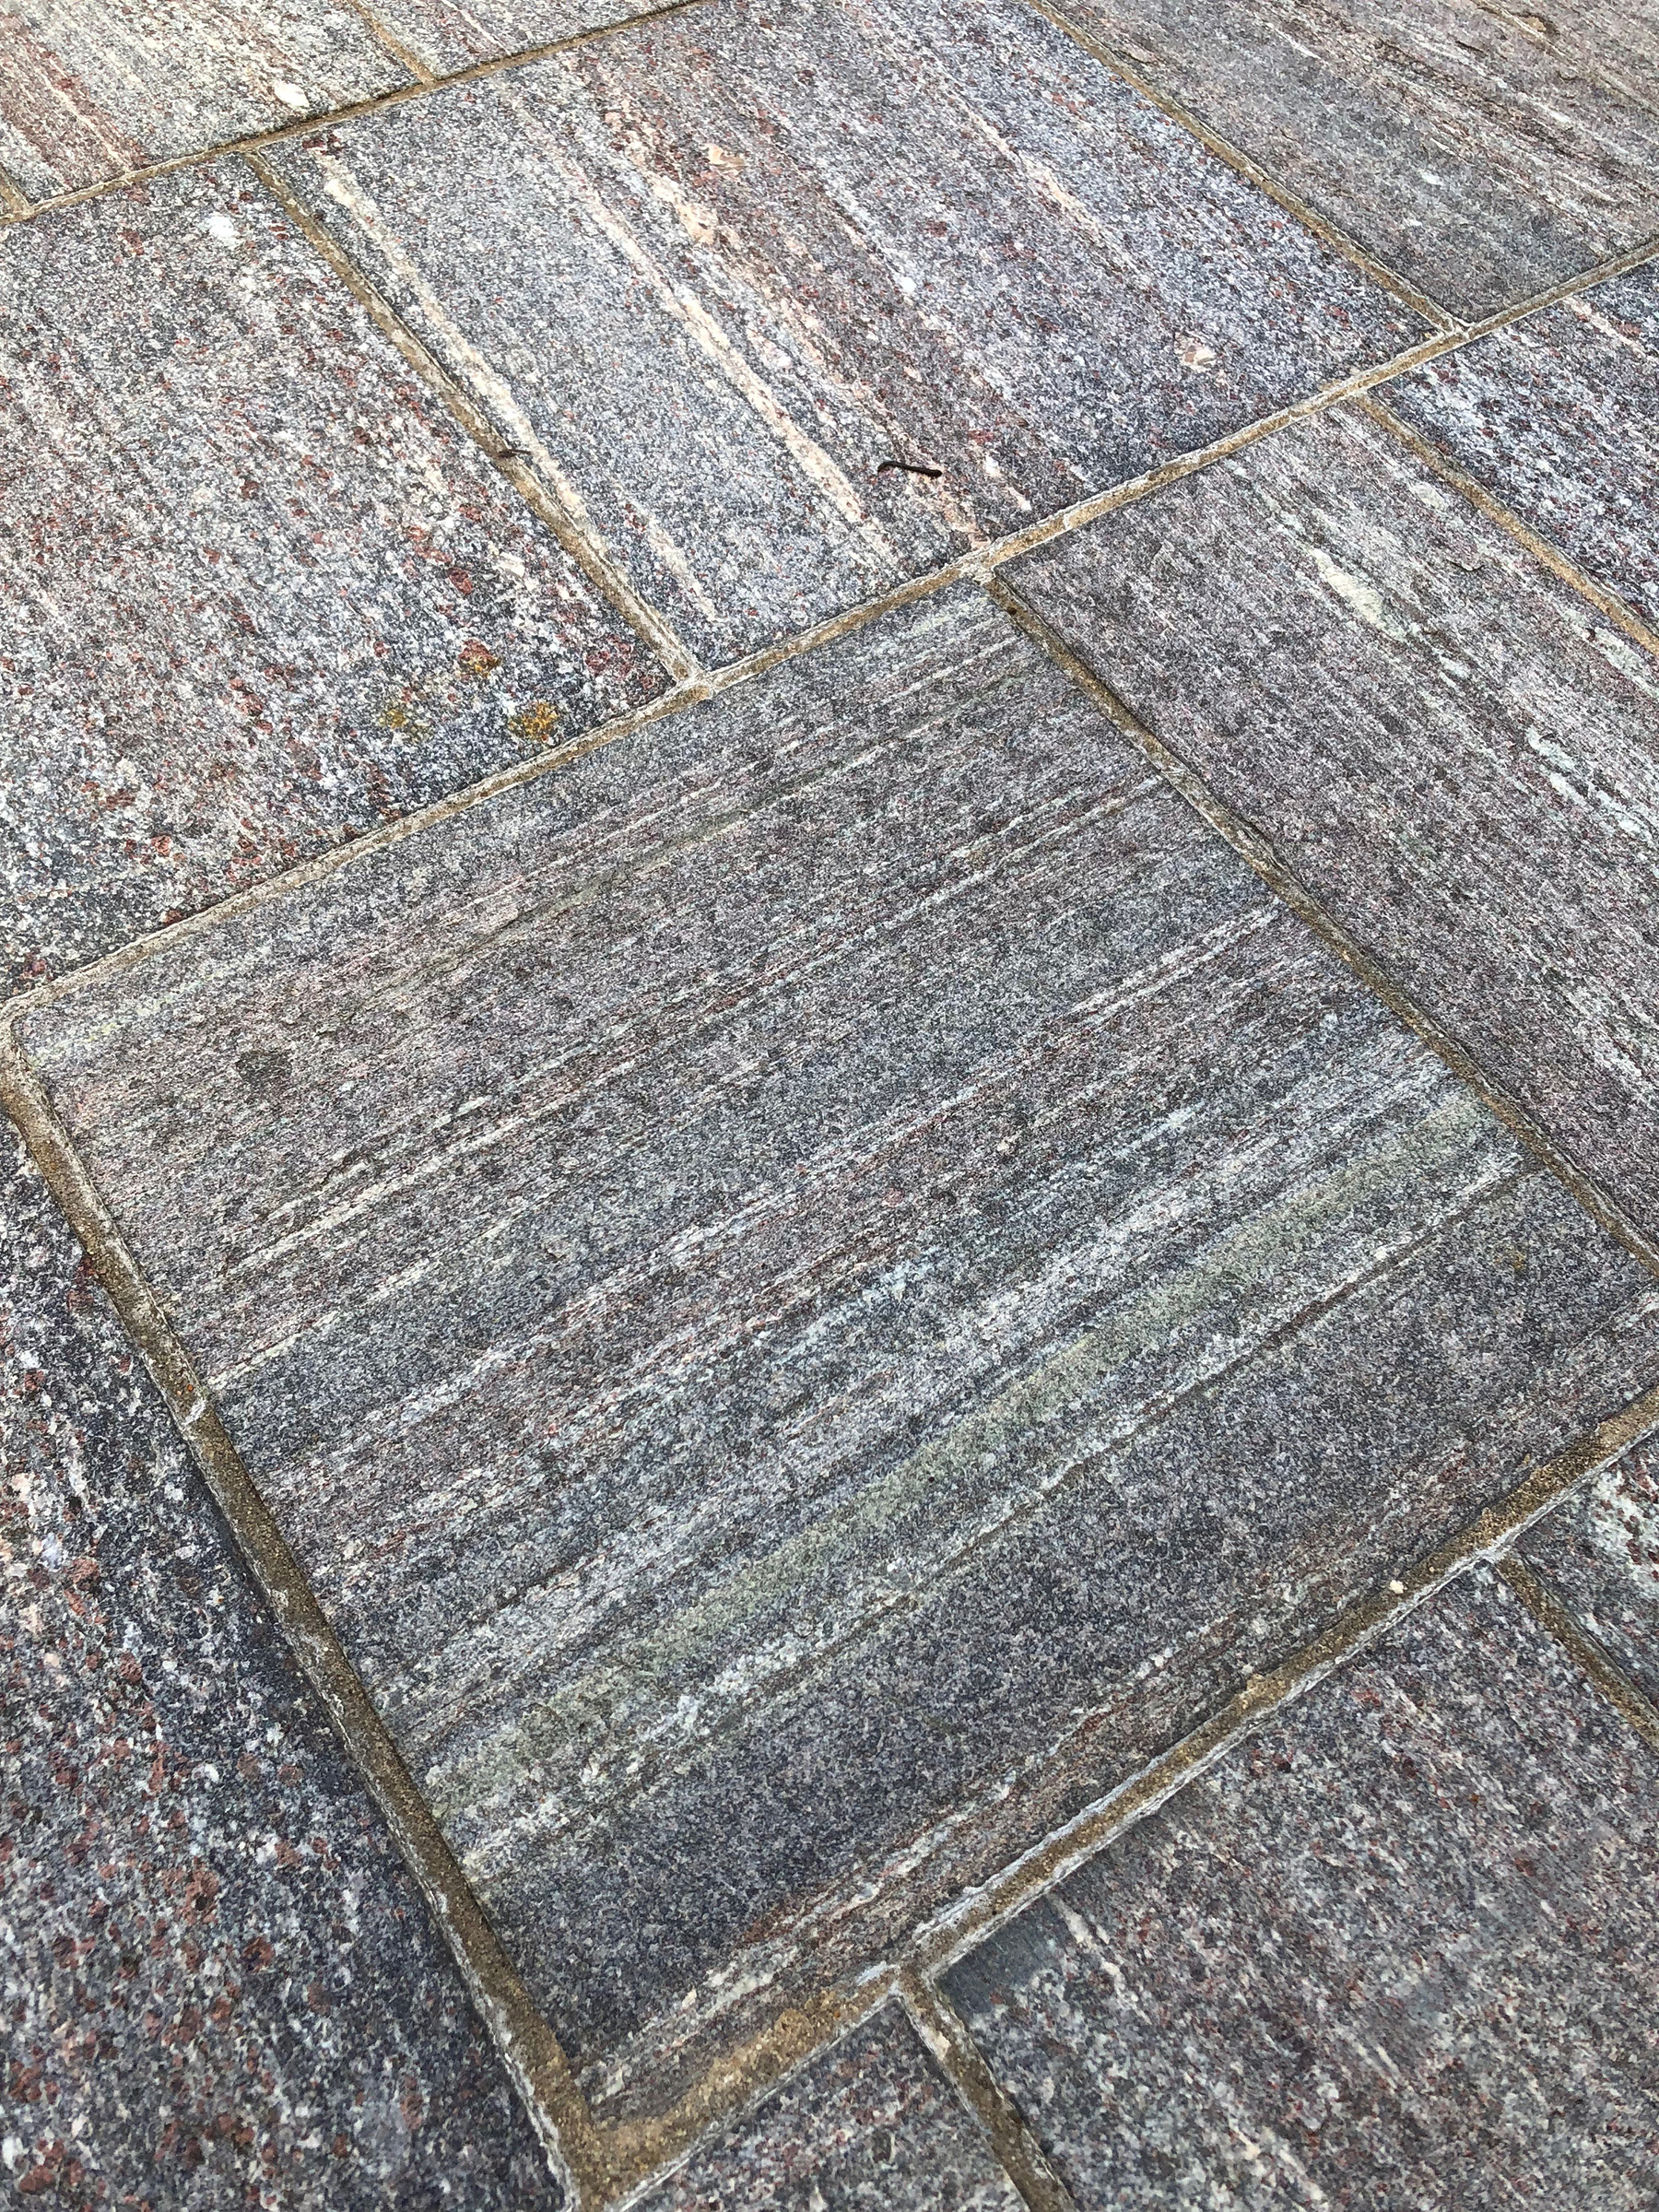 zoomed in sidewalk stone